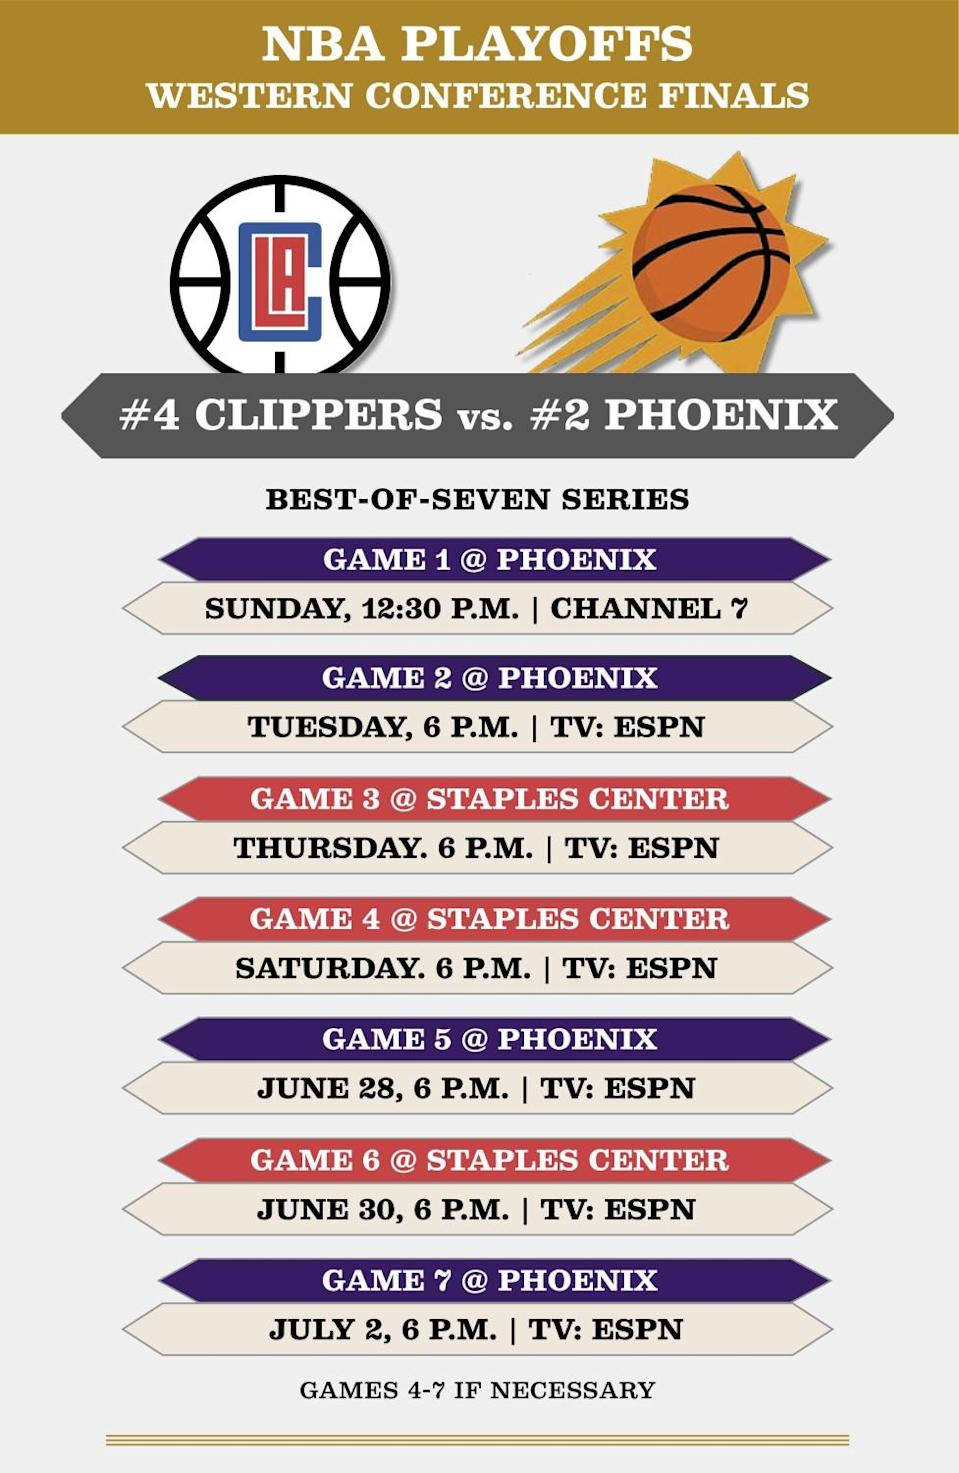 Clippers-Suns finals schedule